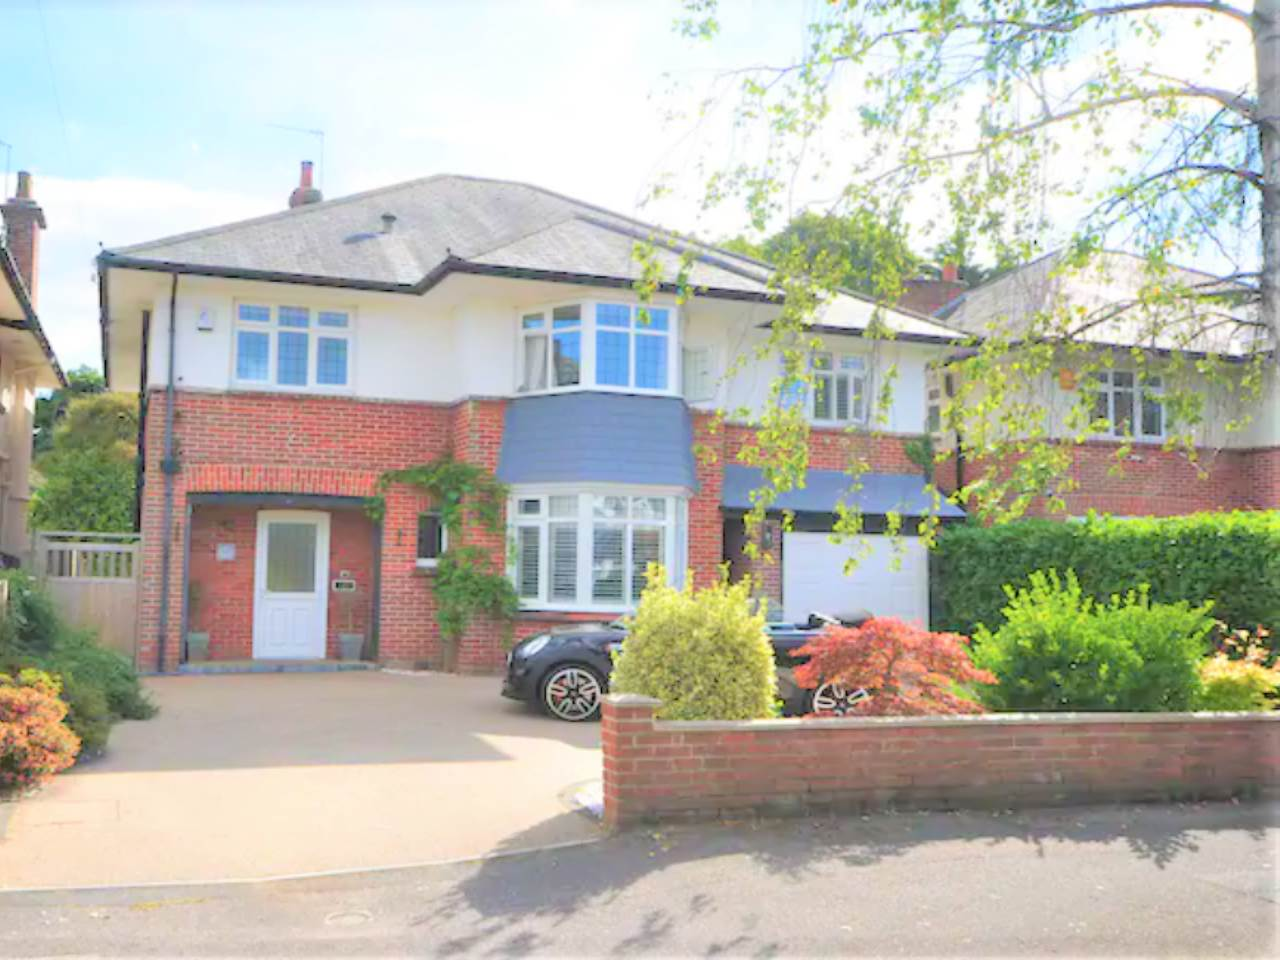 * DETACHED HOUSE * FOUR DOUBLE BEDROOMS * LUXURIOUS BATHROOM * EN SUITE TO MASTER * TWO RECEPTION ROOMS * KITCHEN/DINER * LANDSCAPED SOUTH FACING GARDENS * GARAGE & PARKING *